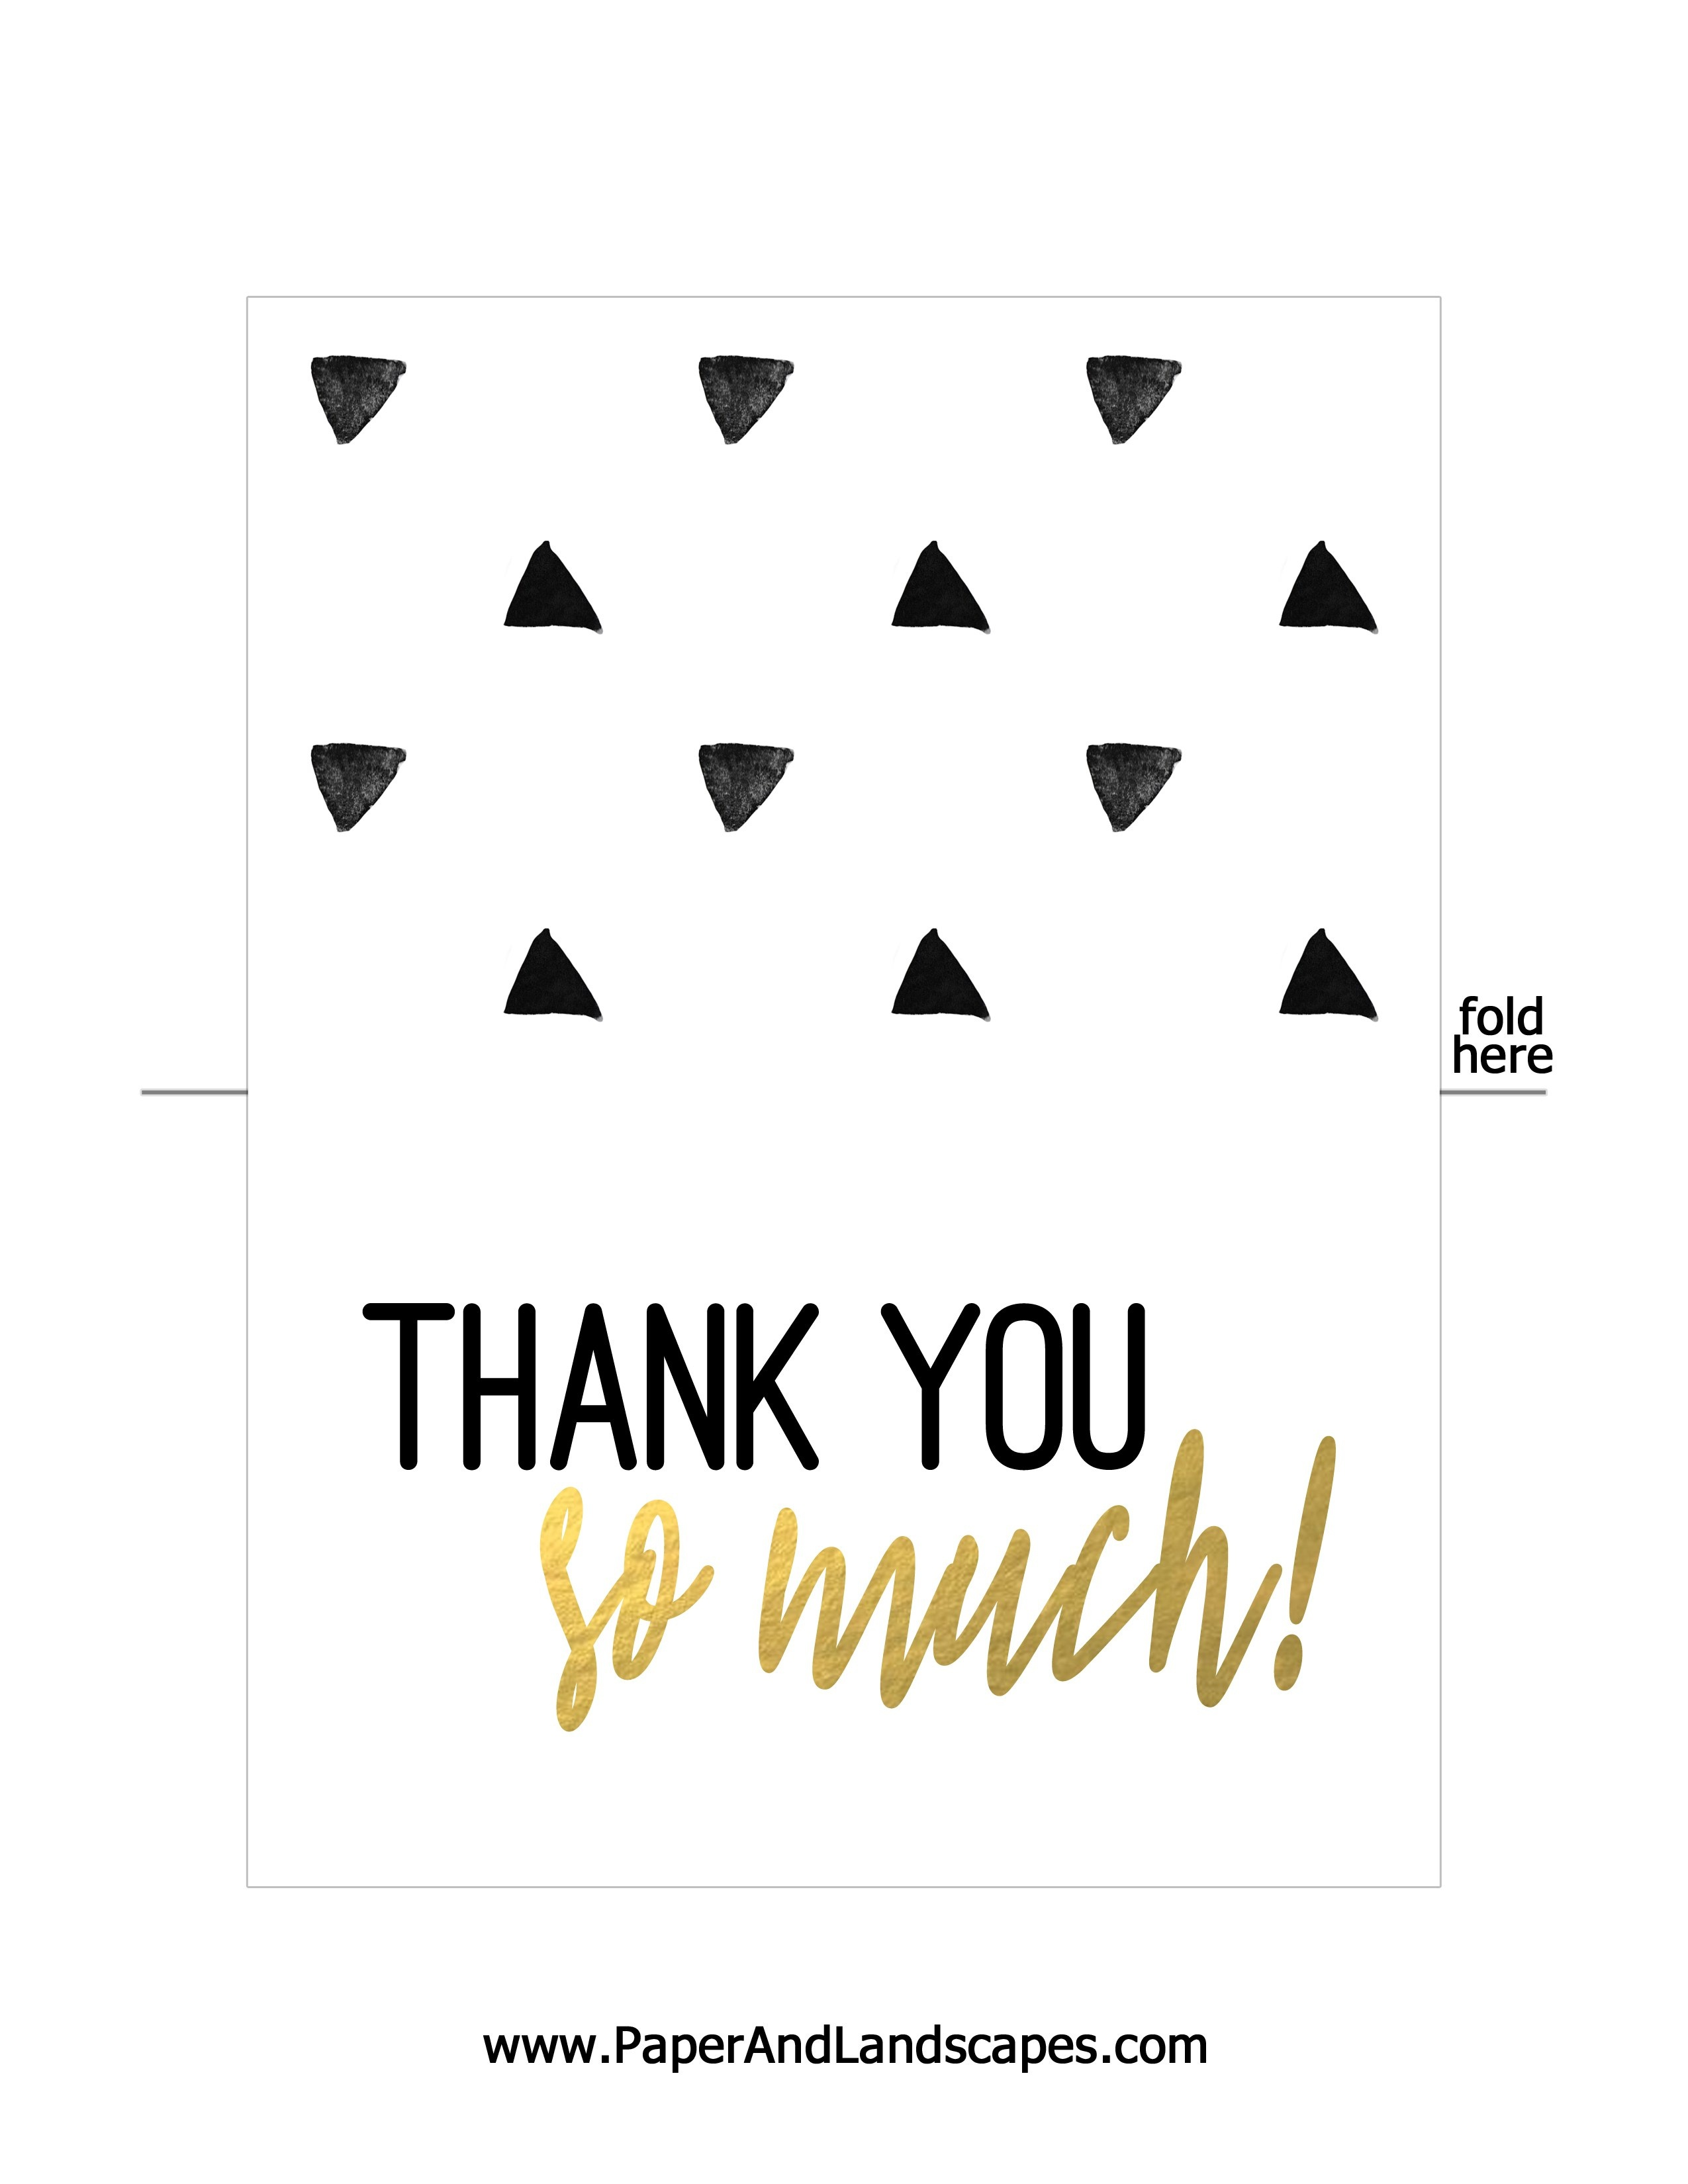 Free Printable Thank You Cards - Paper And Landscapes - Free Printable Custom Thank You Cards